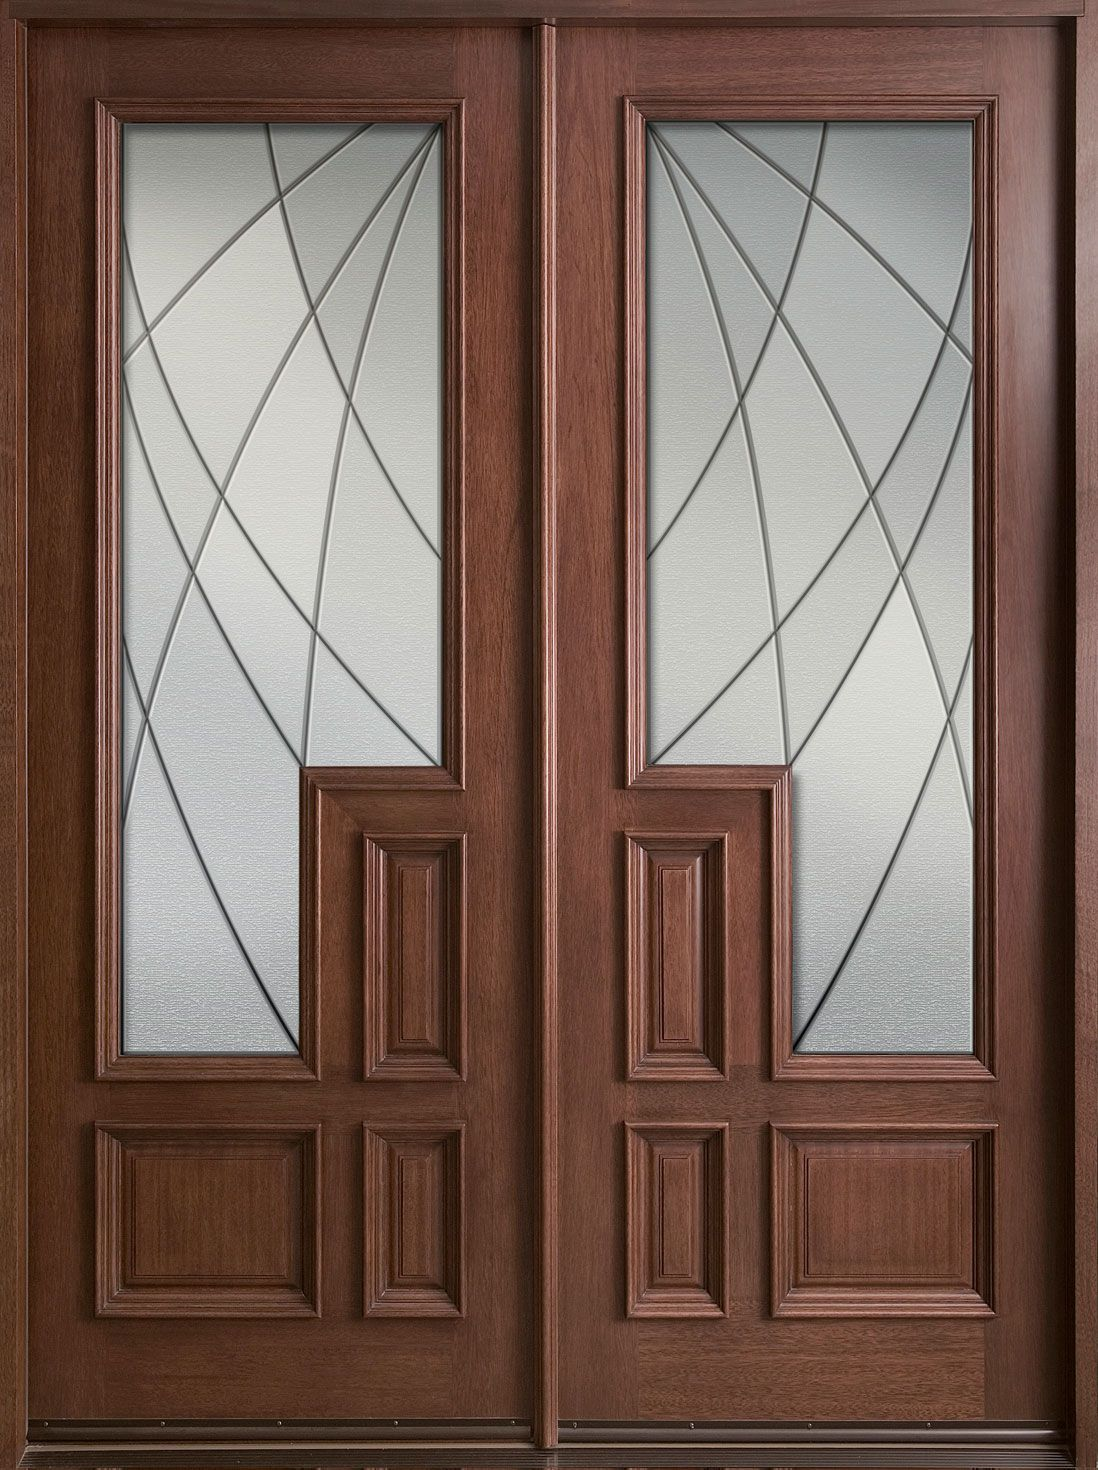 Inspiring double fiberglass entry door as furniture for for Modern front double door designs